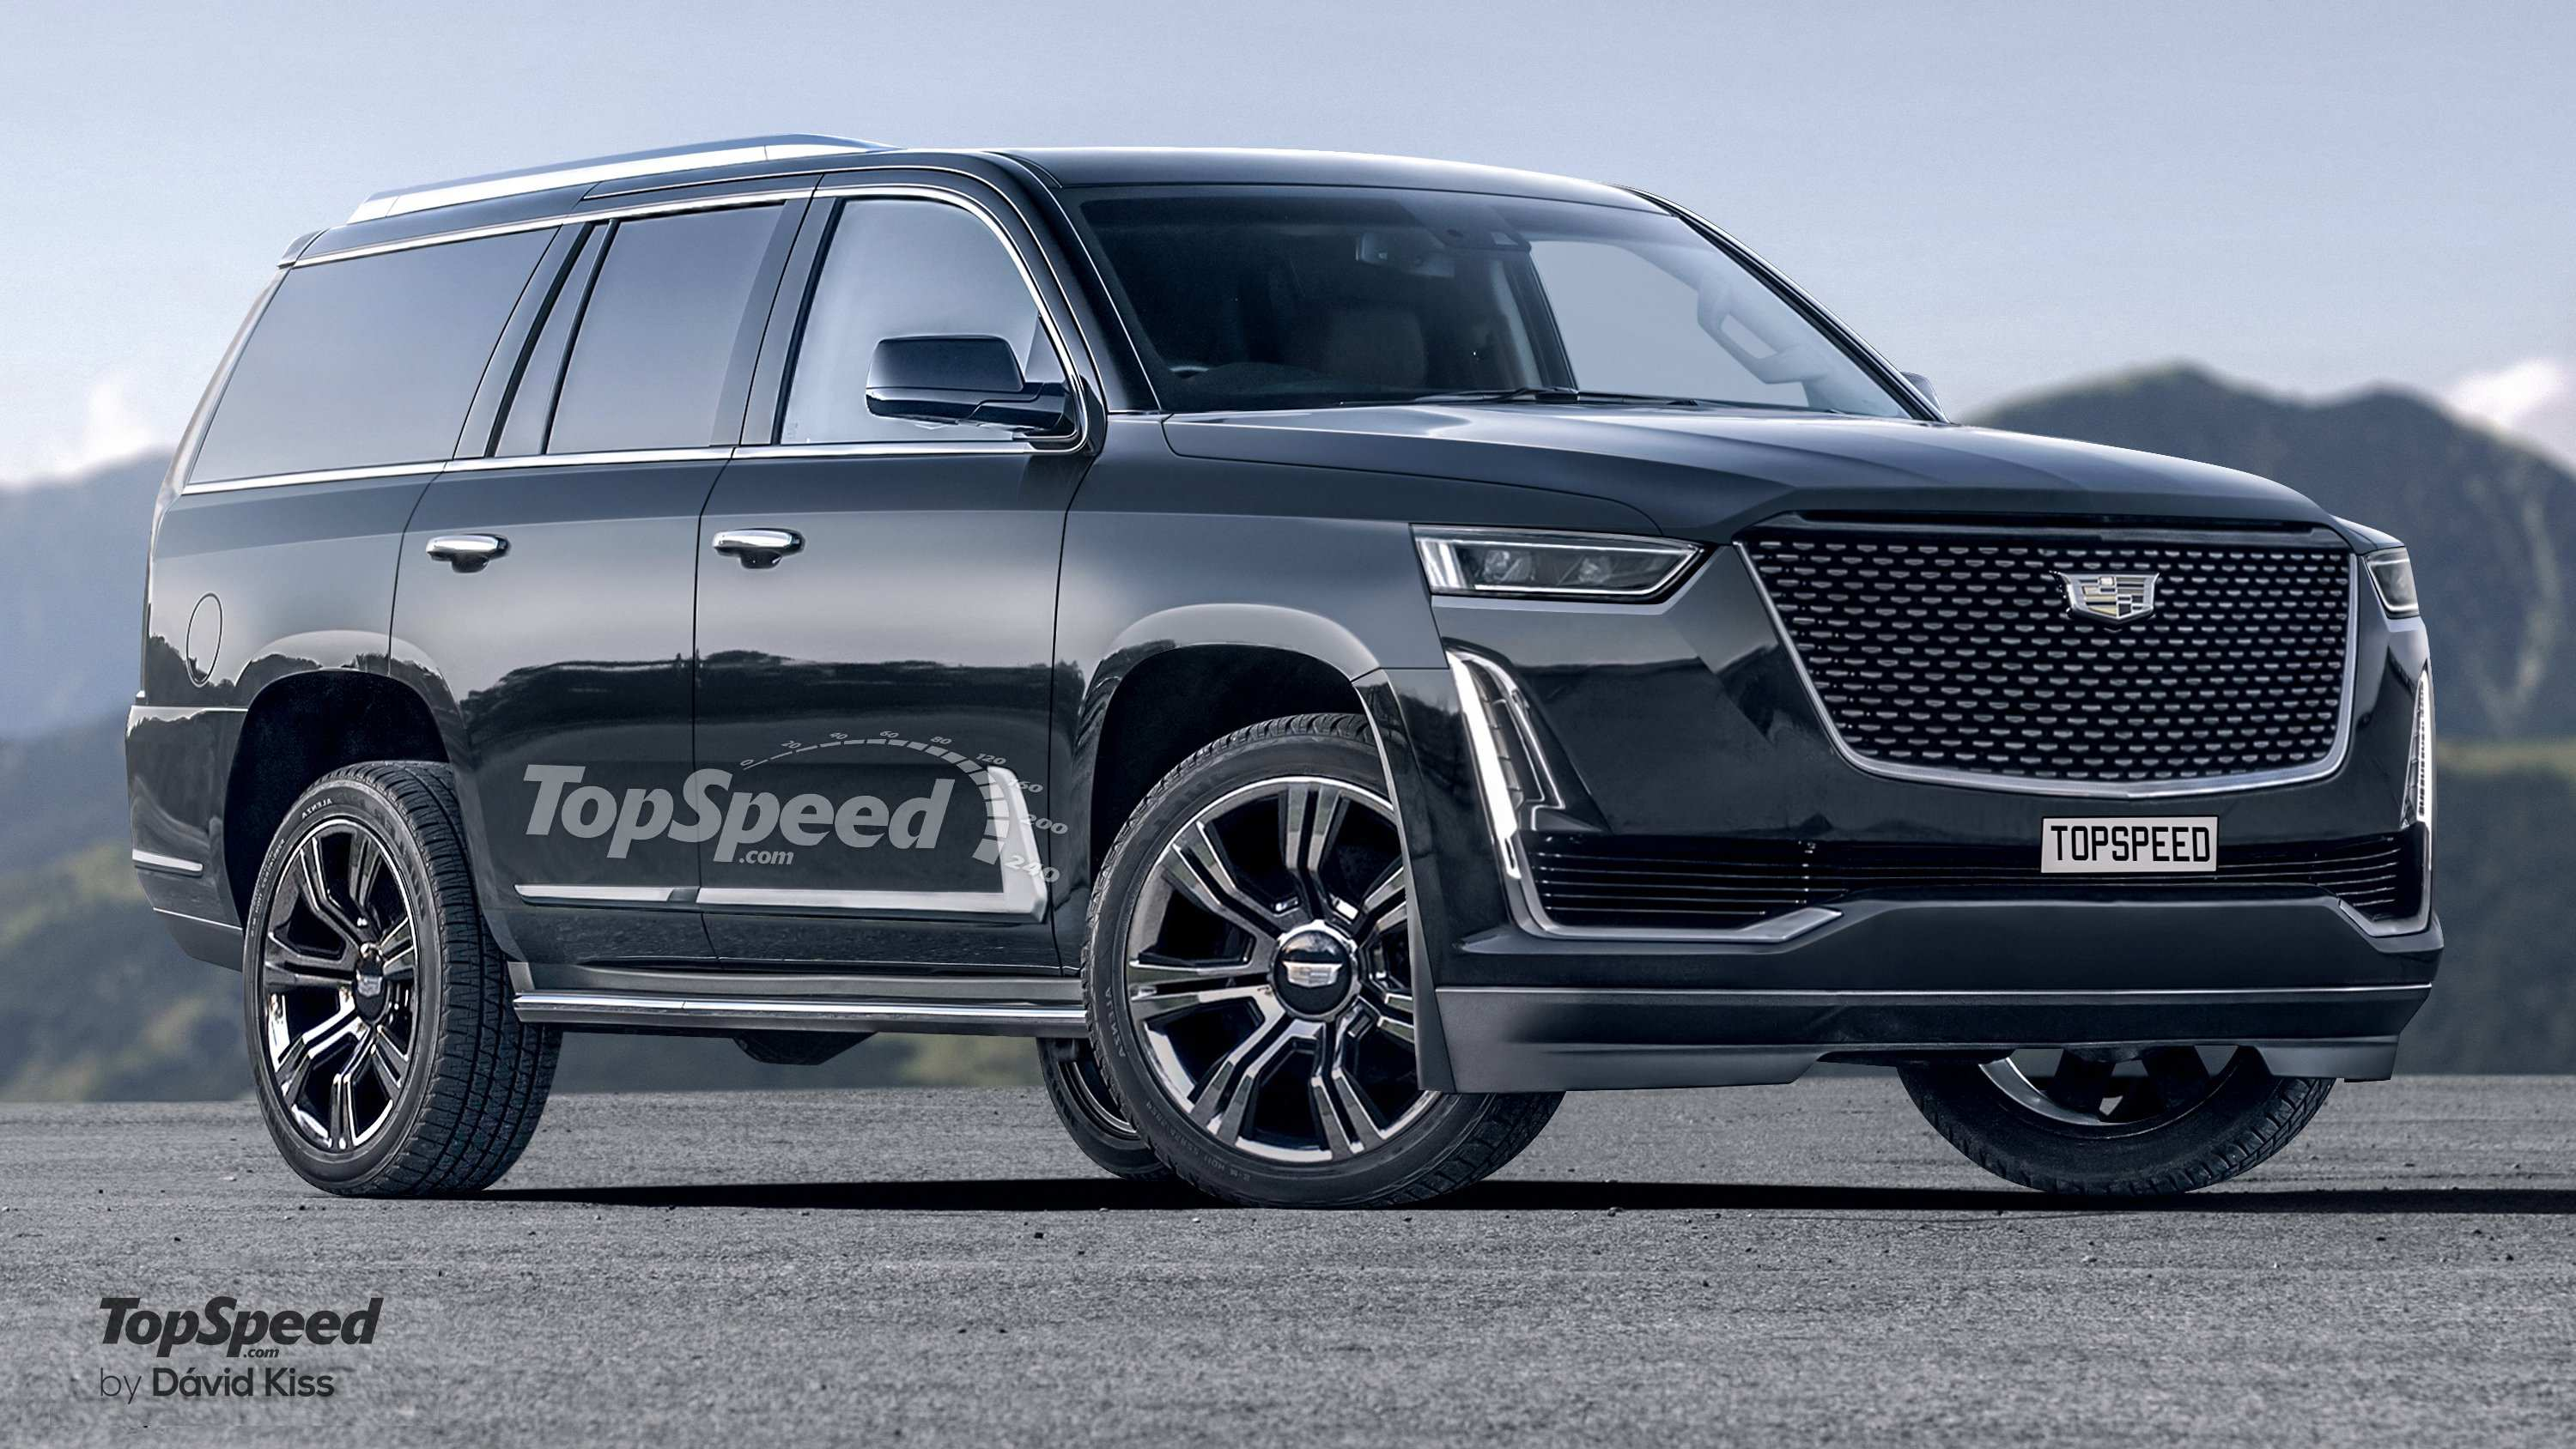 79 Concept of Cadillac Escalade 2020 Release Date Pricing by Cadillac Escalade 2020 Release Date